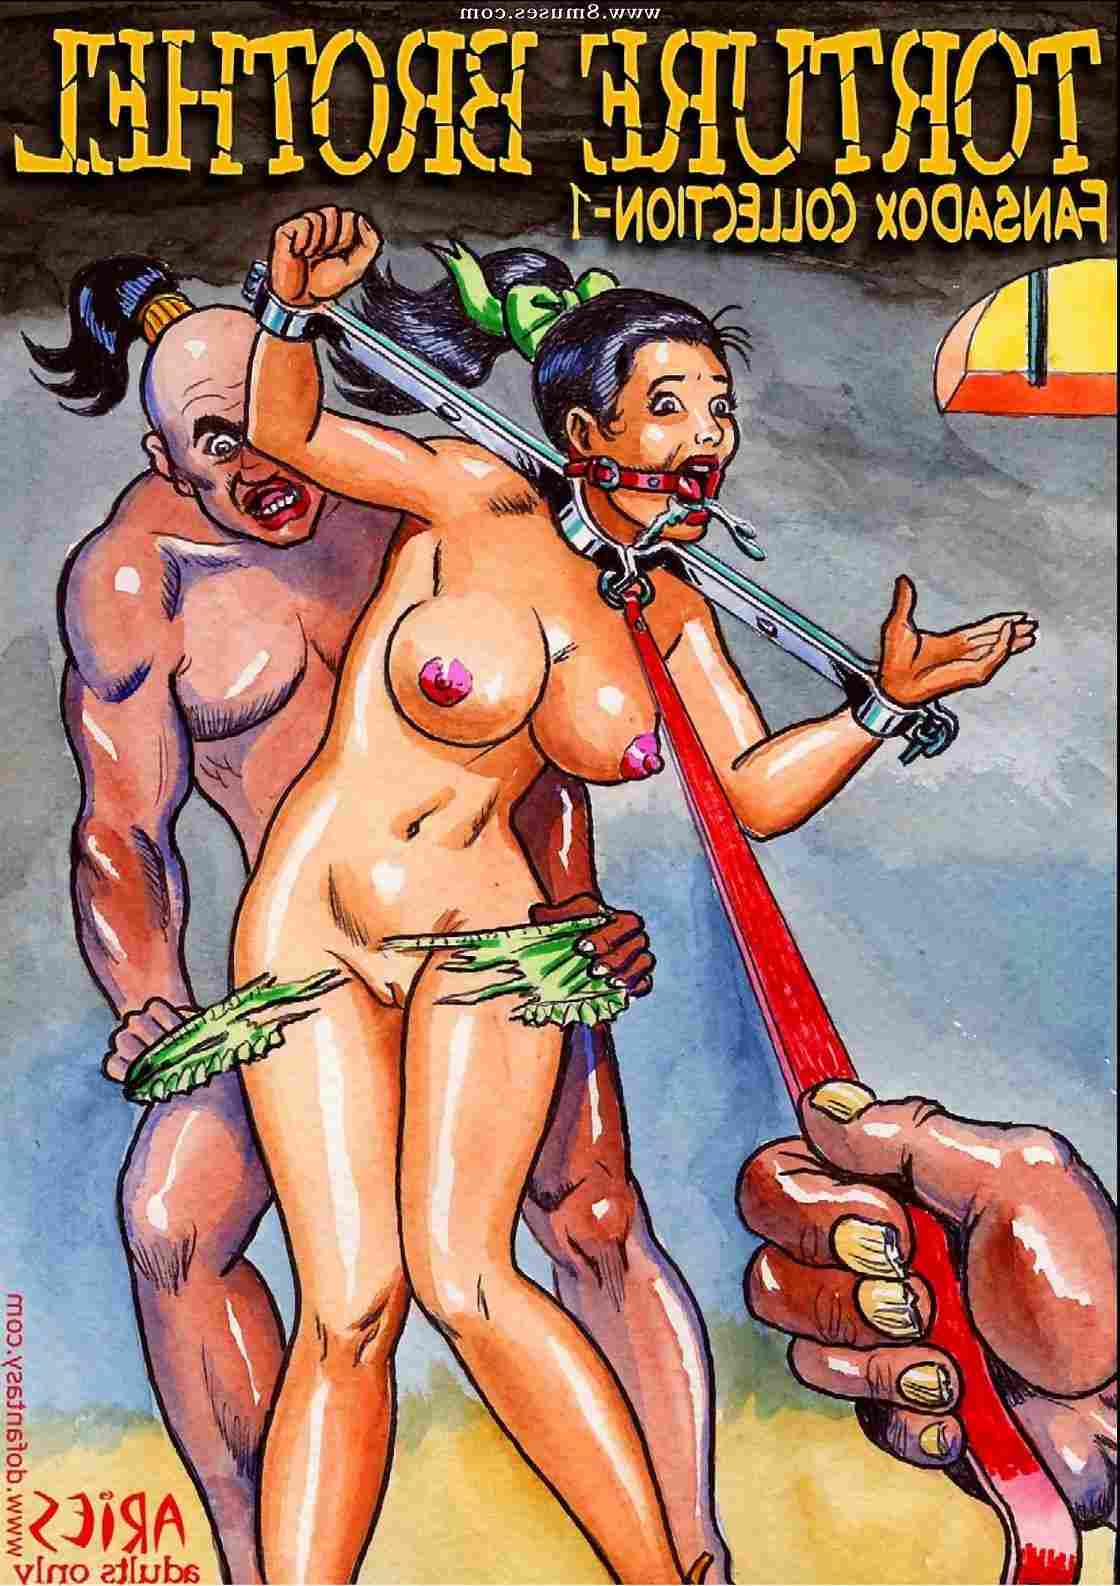 Fansadox-Comics/0-100 0-100__8muses_-_Sex_and_Porn_Comics.jpg